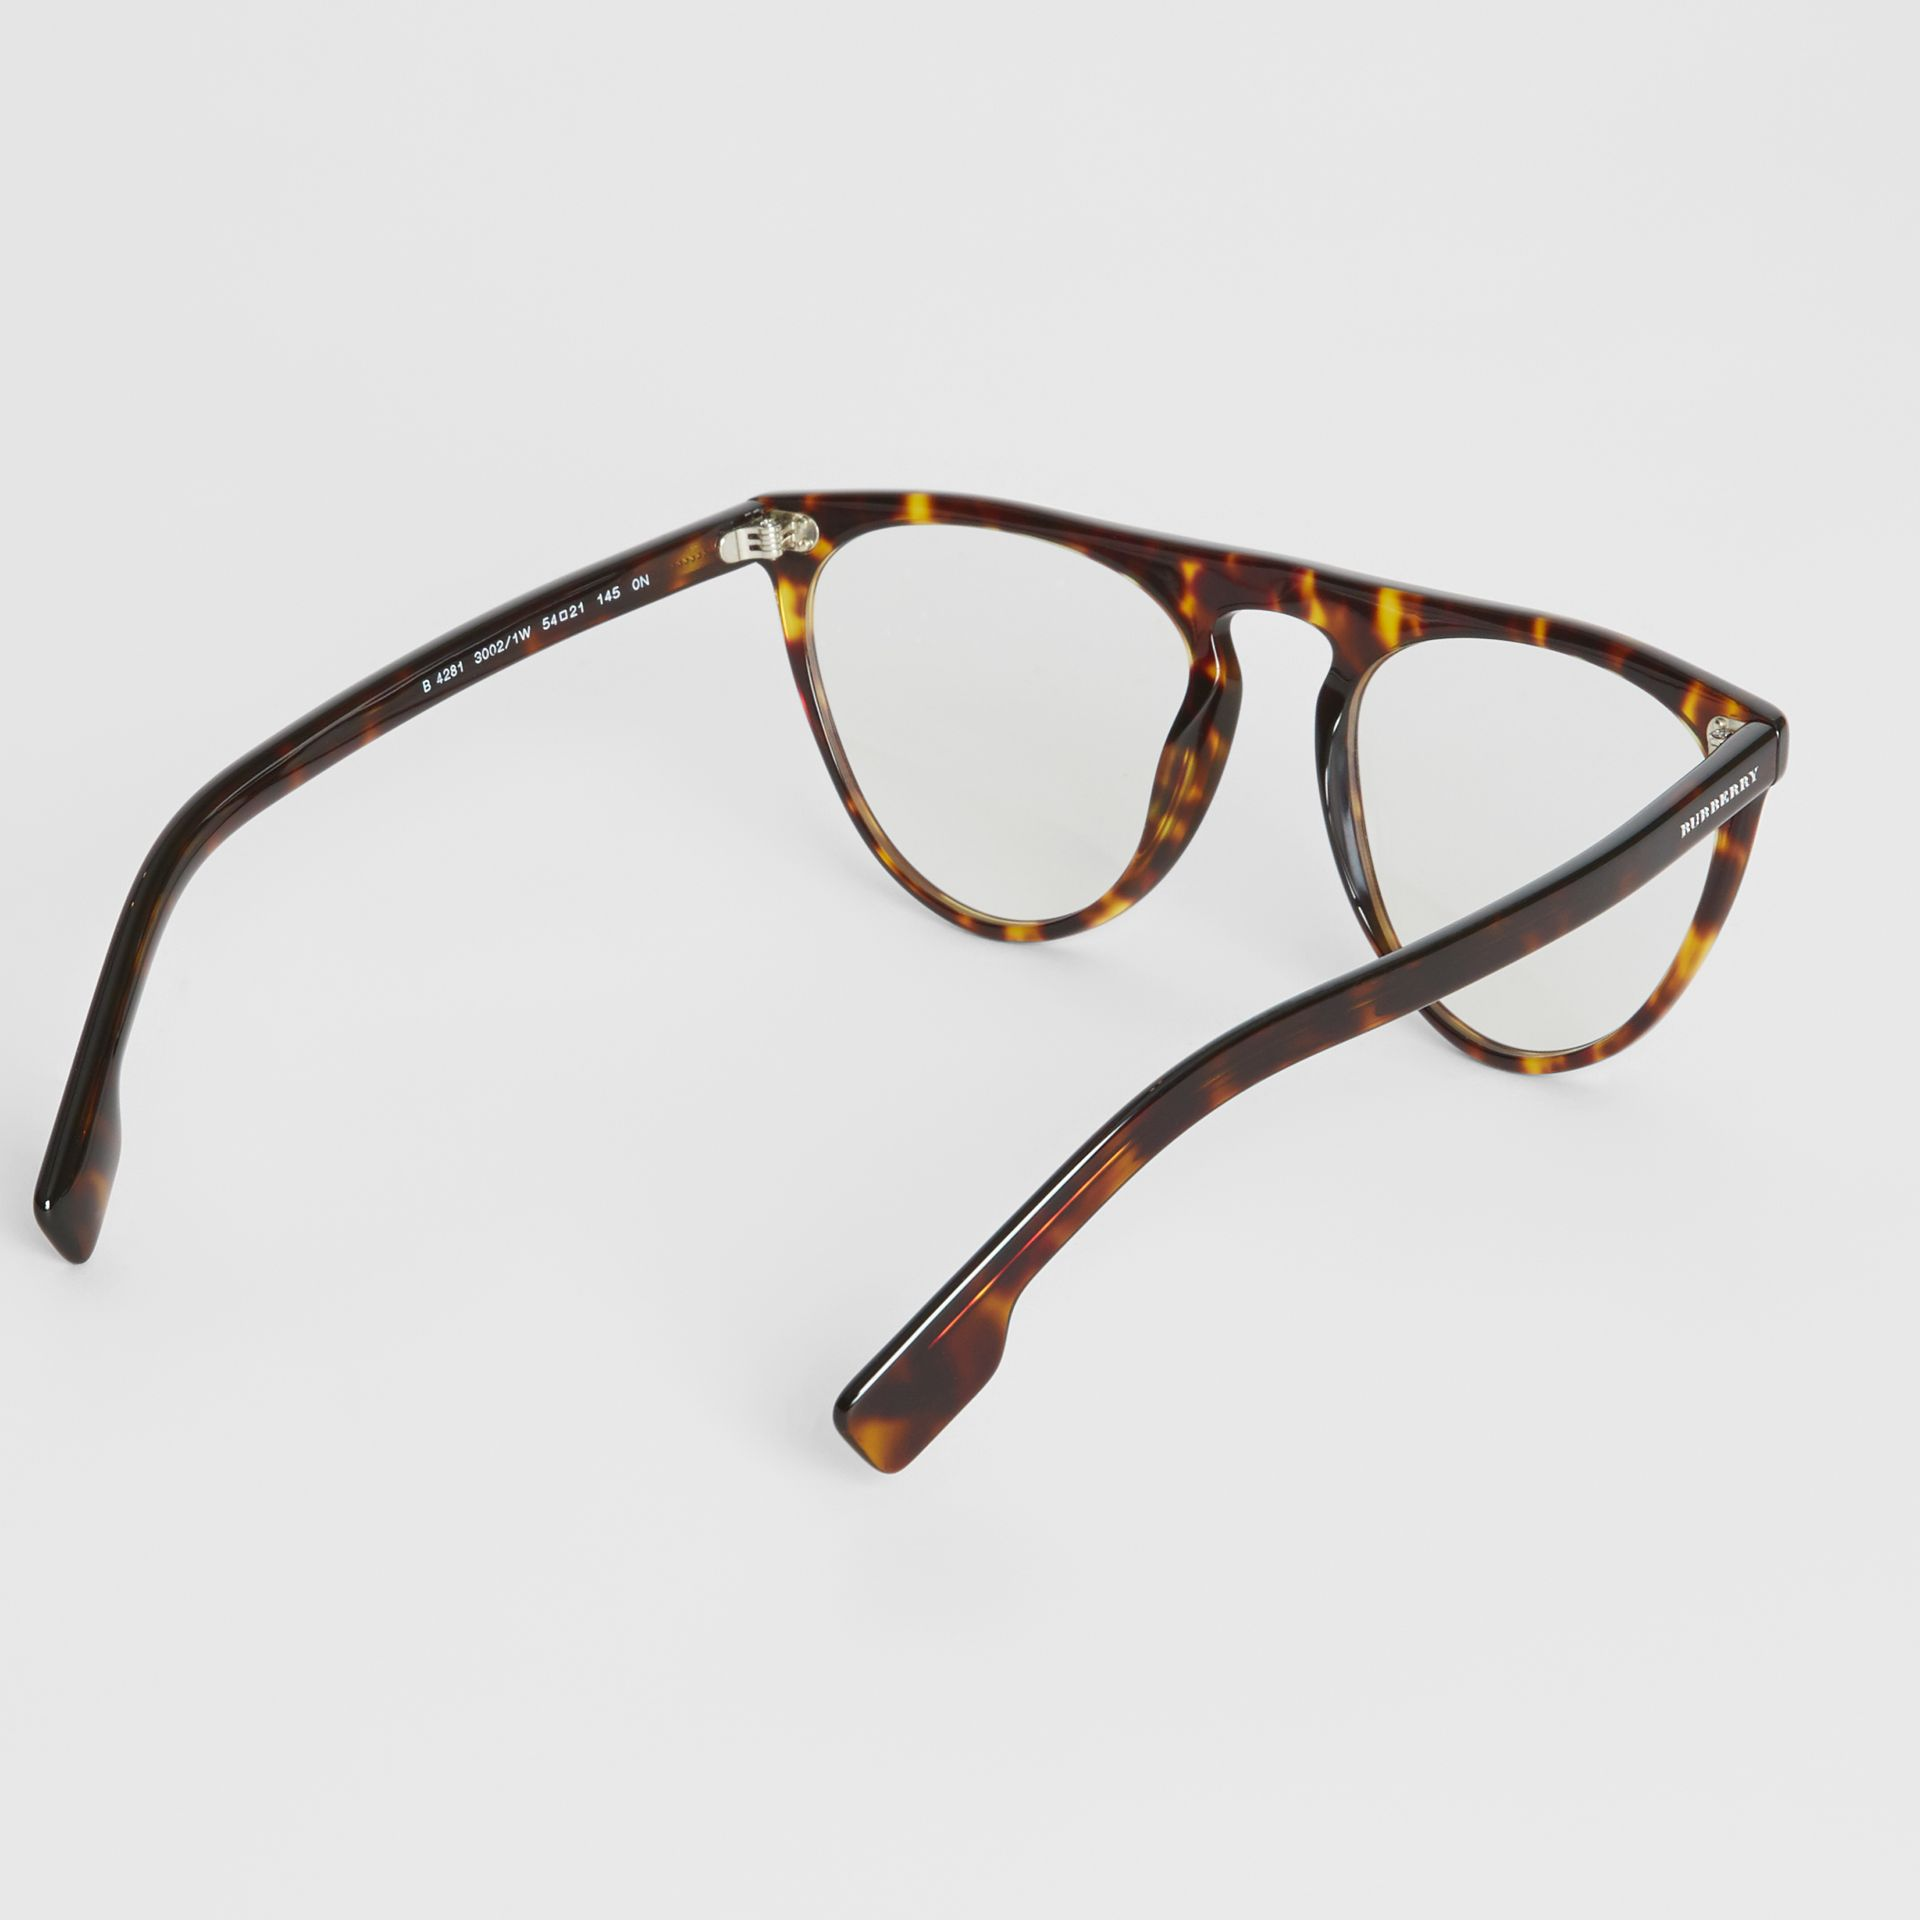 Keyhole D-shaped Optical Frames in Tortoise Shell - Men | Burberry United Kingdom - gallery image 4